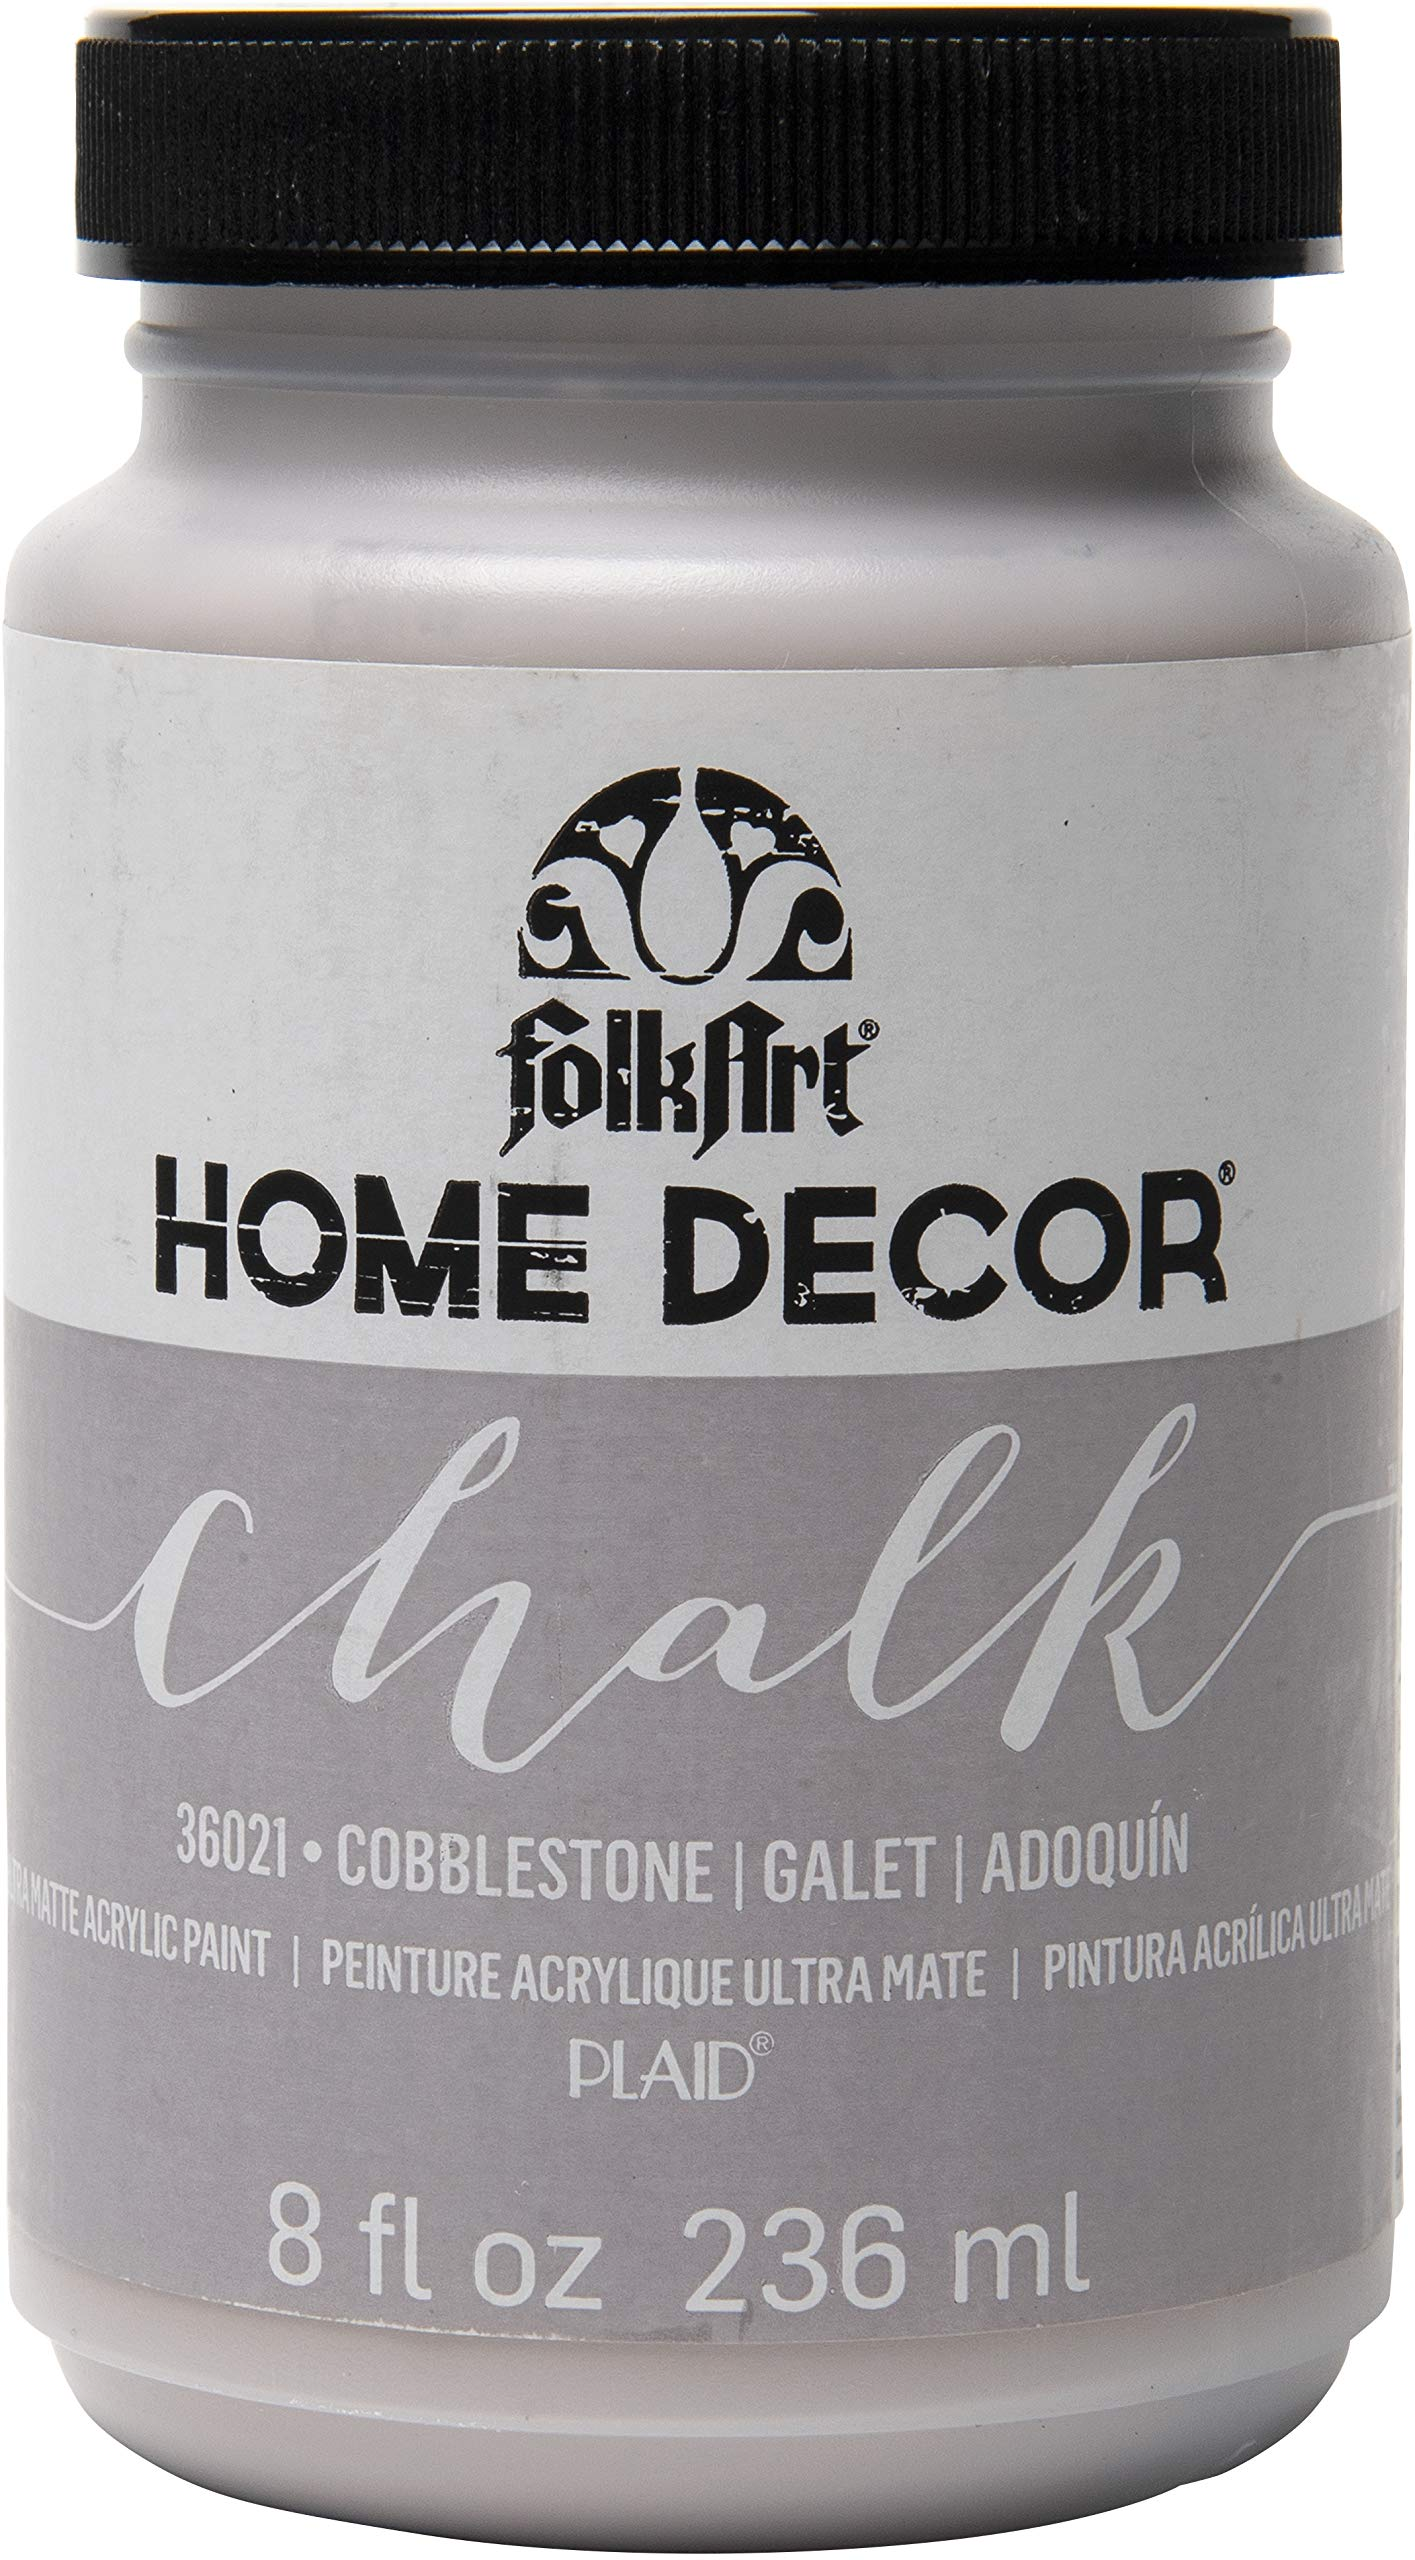 Folk Art Home Decor Chalk Paint Review from img-s.yoybuy.com